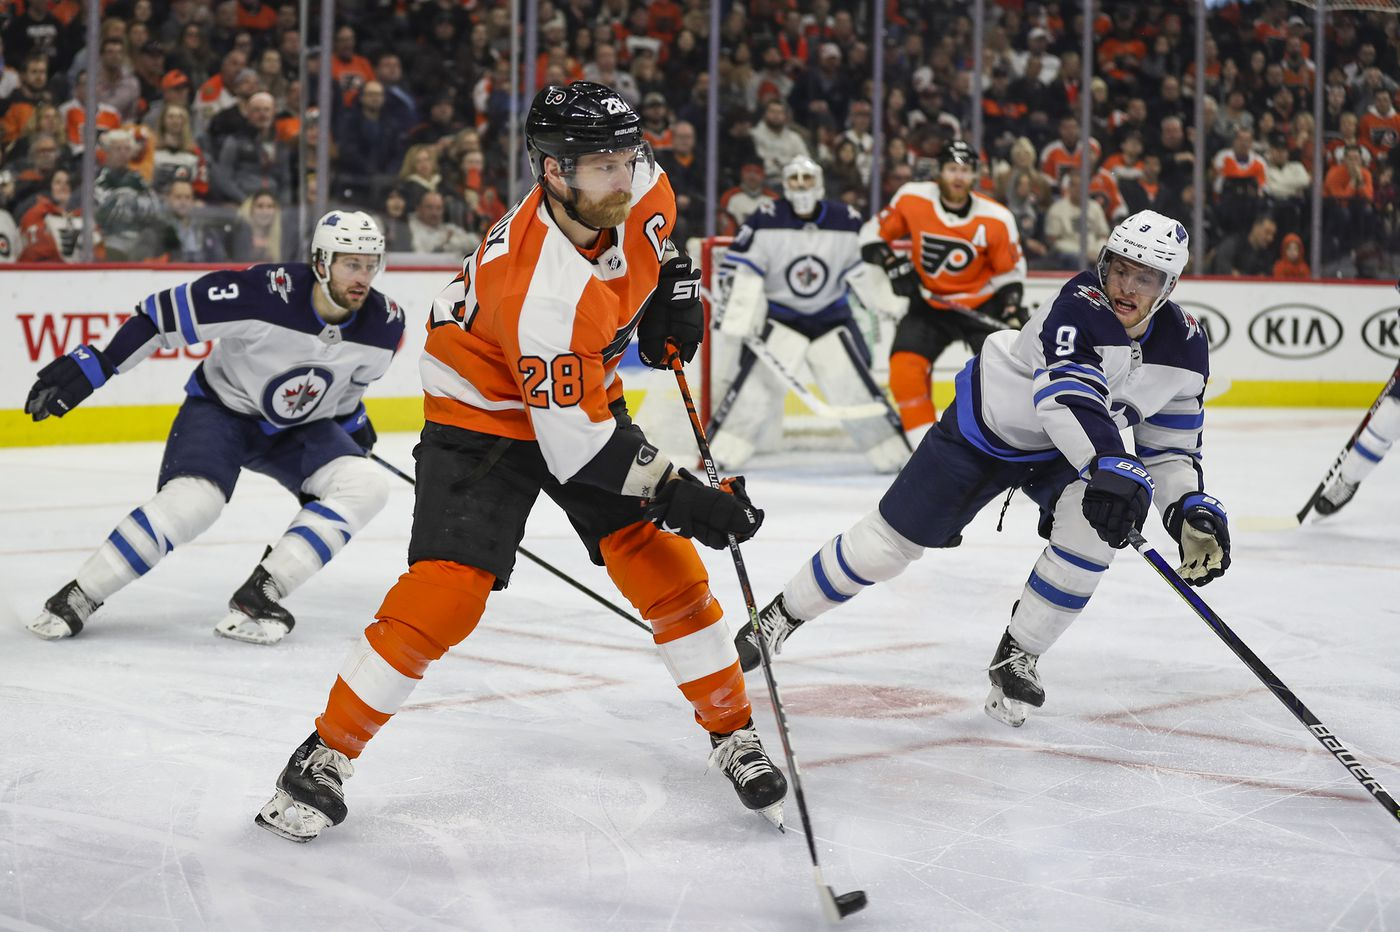 NHL is moving cautiously as start of training camps and the season are still on hold because of COVID-19 and labor issues